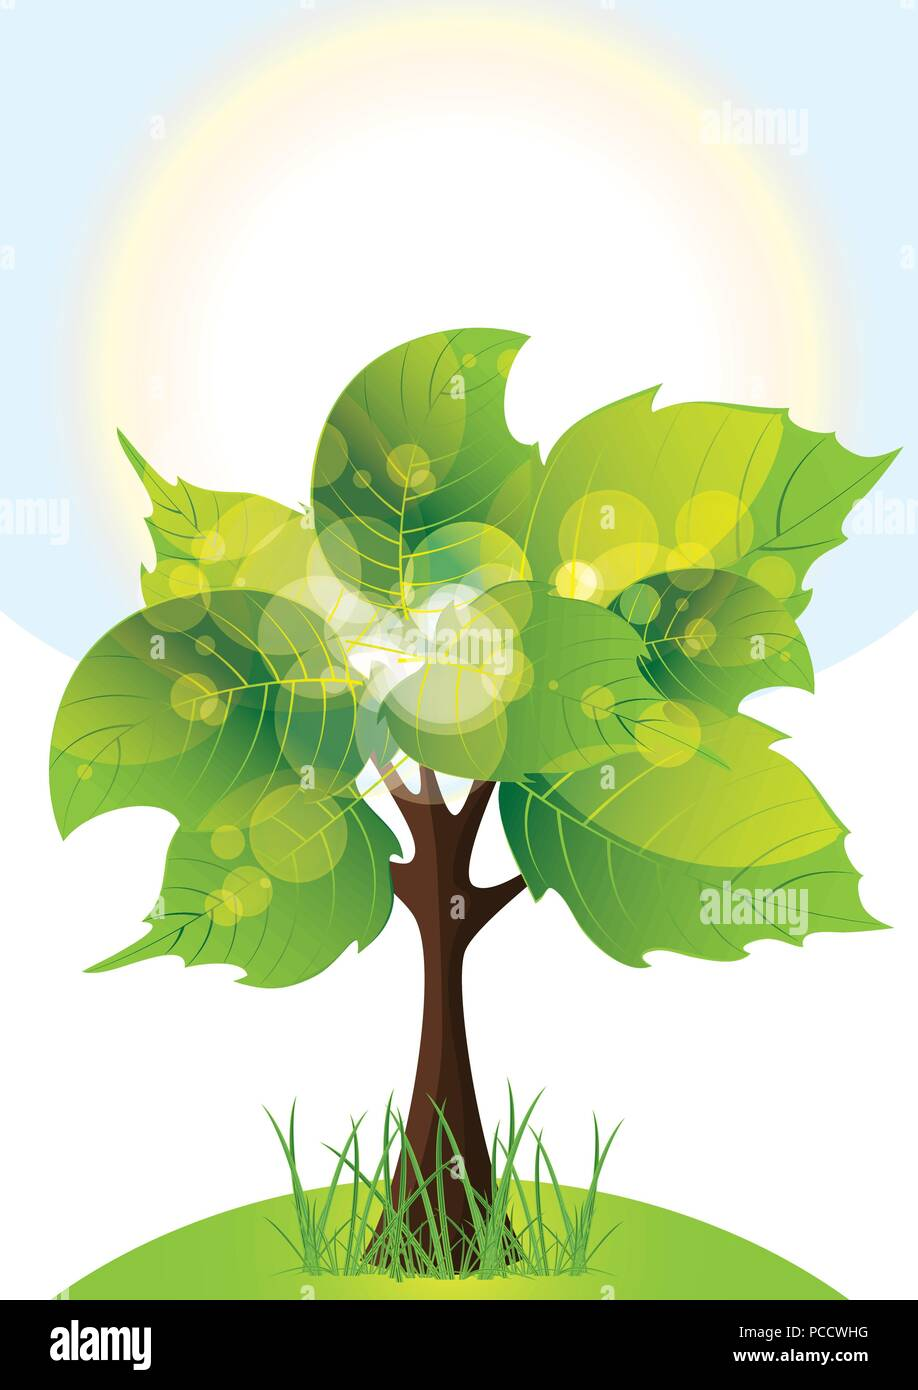 tree with lush green foliage, sunny day, vector illustration - Stock Vector